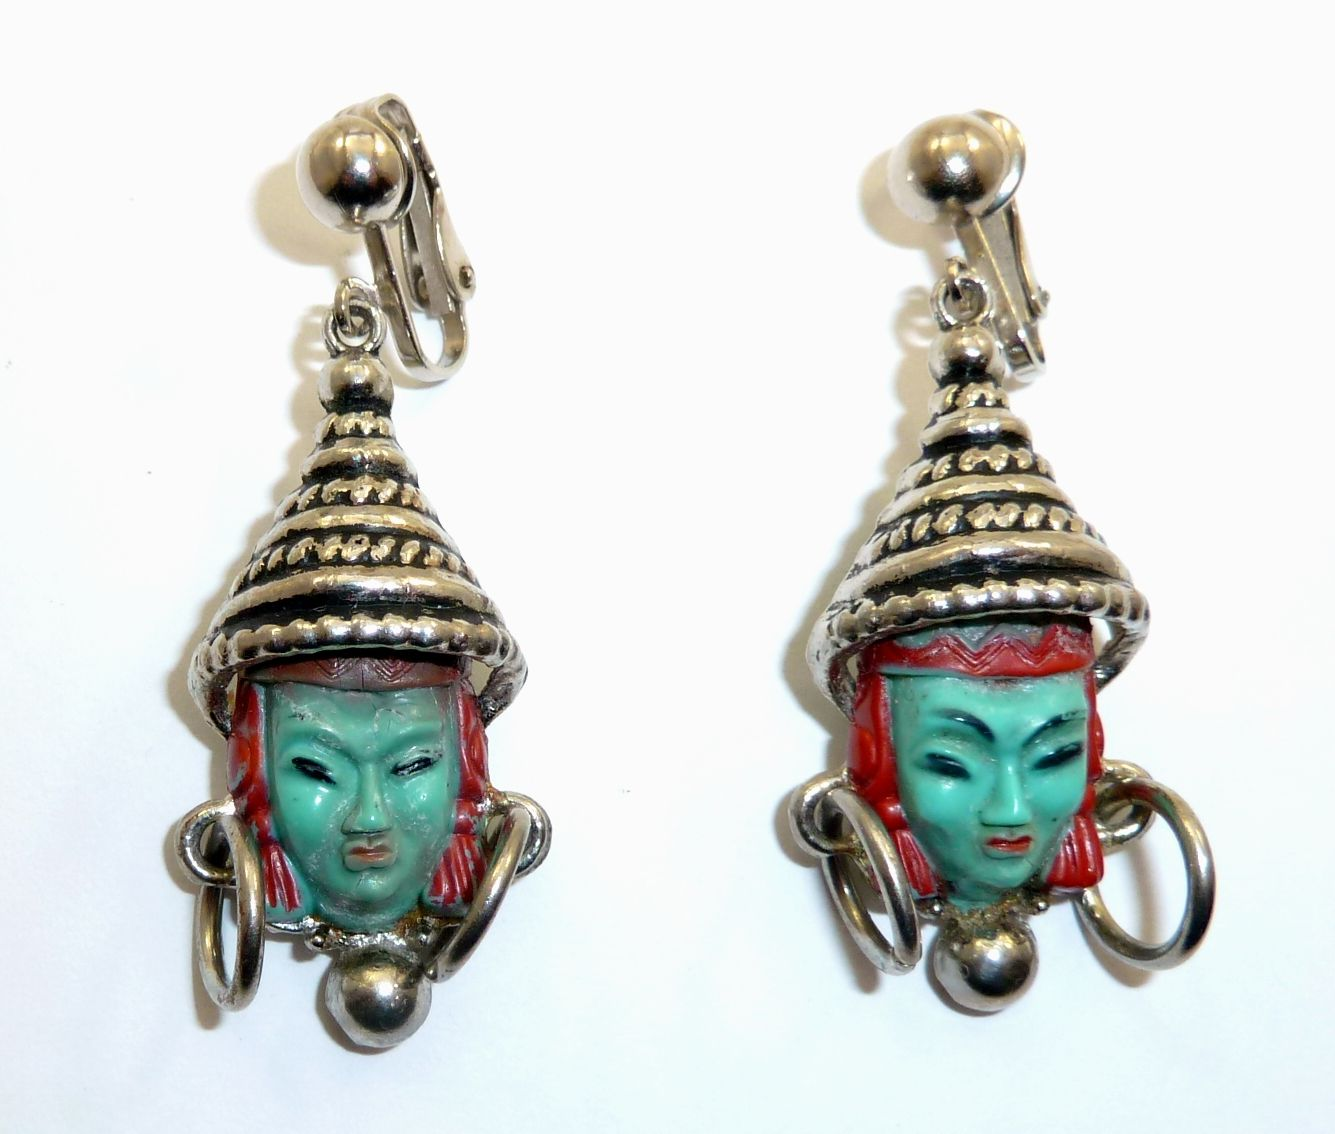 Unmarked Selro/Selini Thai Princess clip earrings.  Photographed by Gillian Horsup.  www.gillianhorsup.com